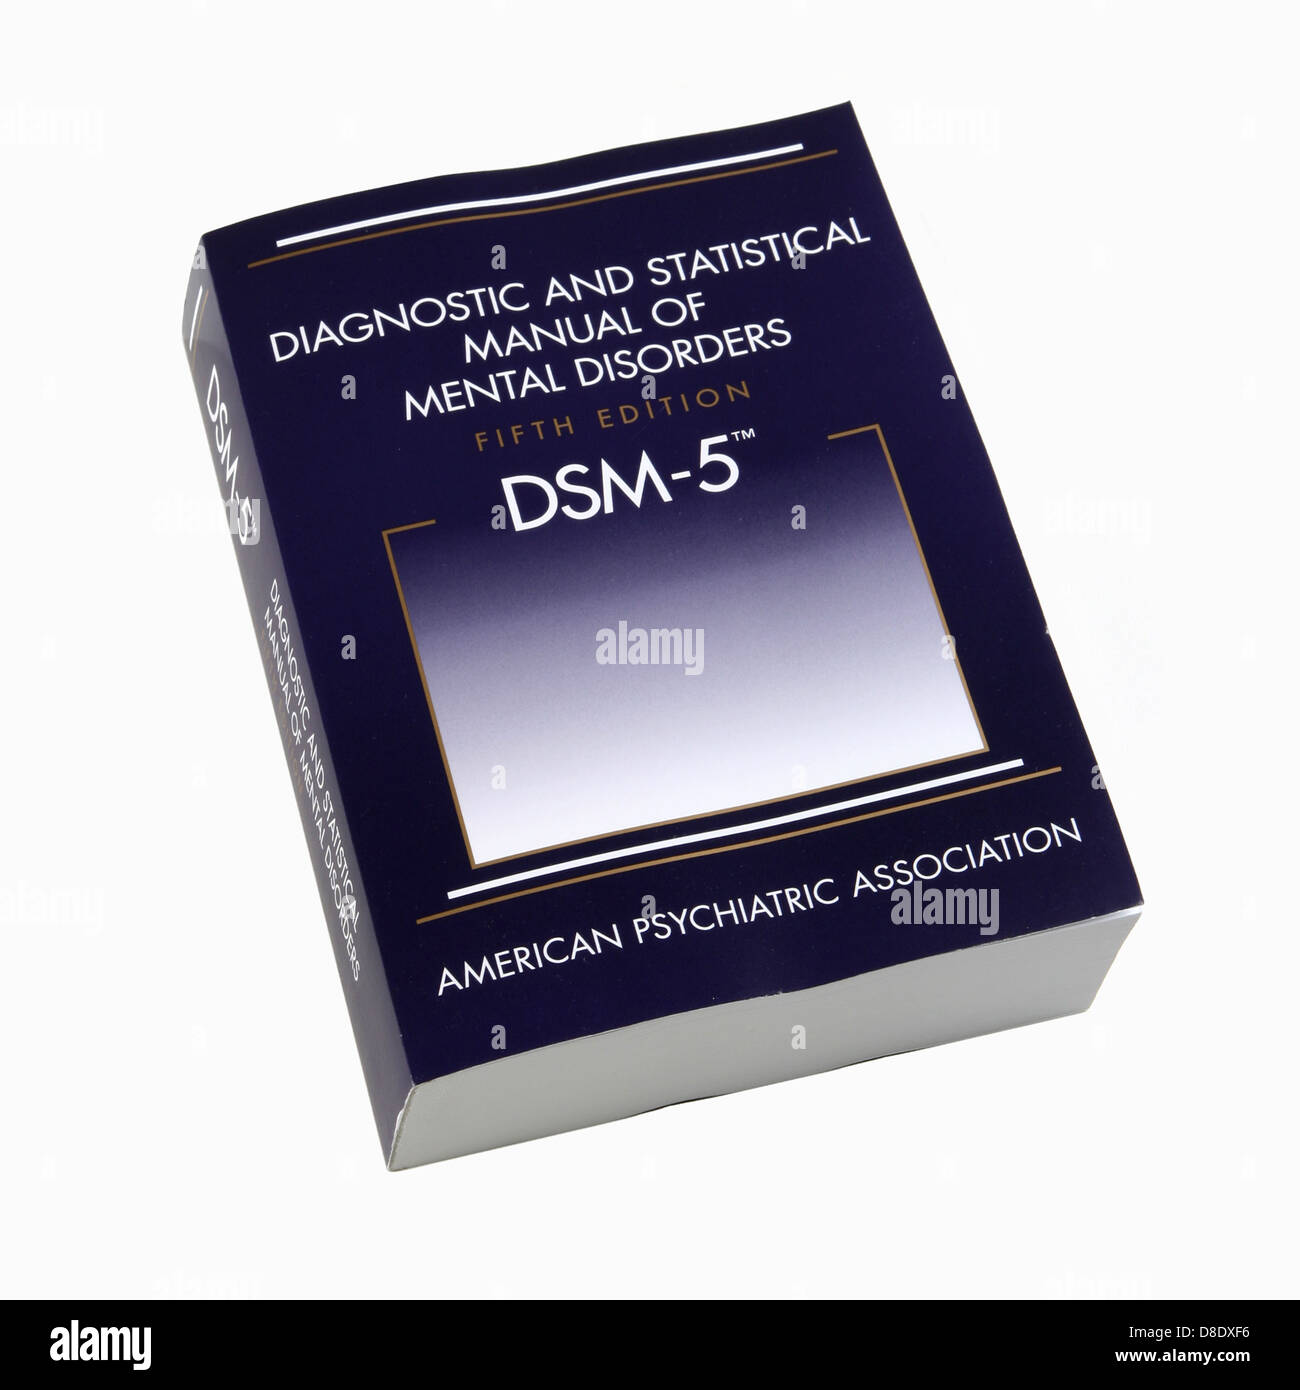 Diagnostic and Statistical Manual of Mental Disorders, Fifth Edition (DSM-5)  published